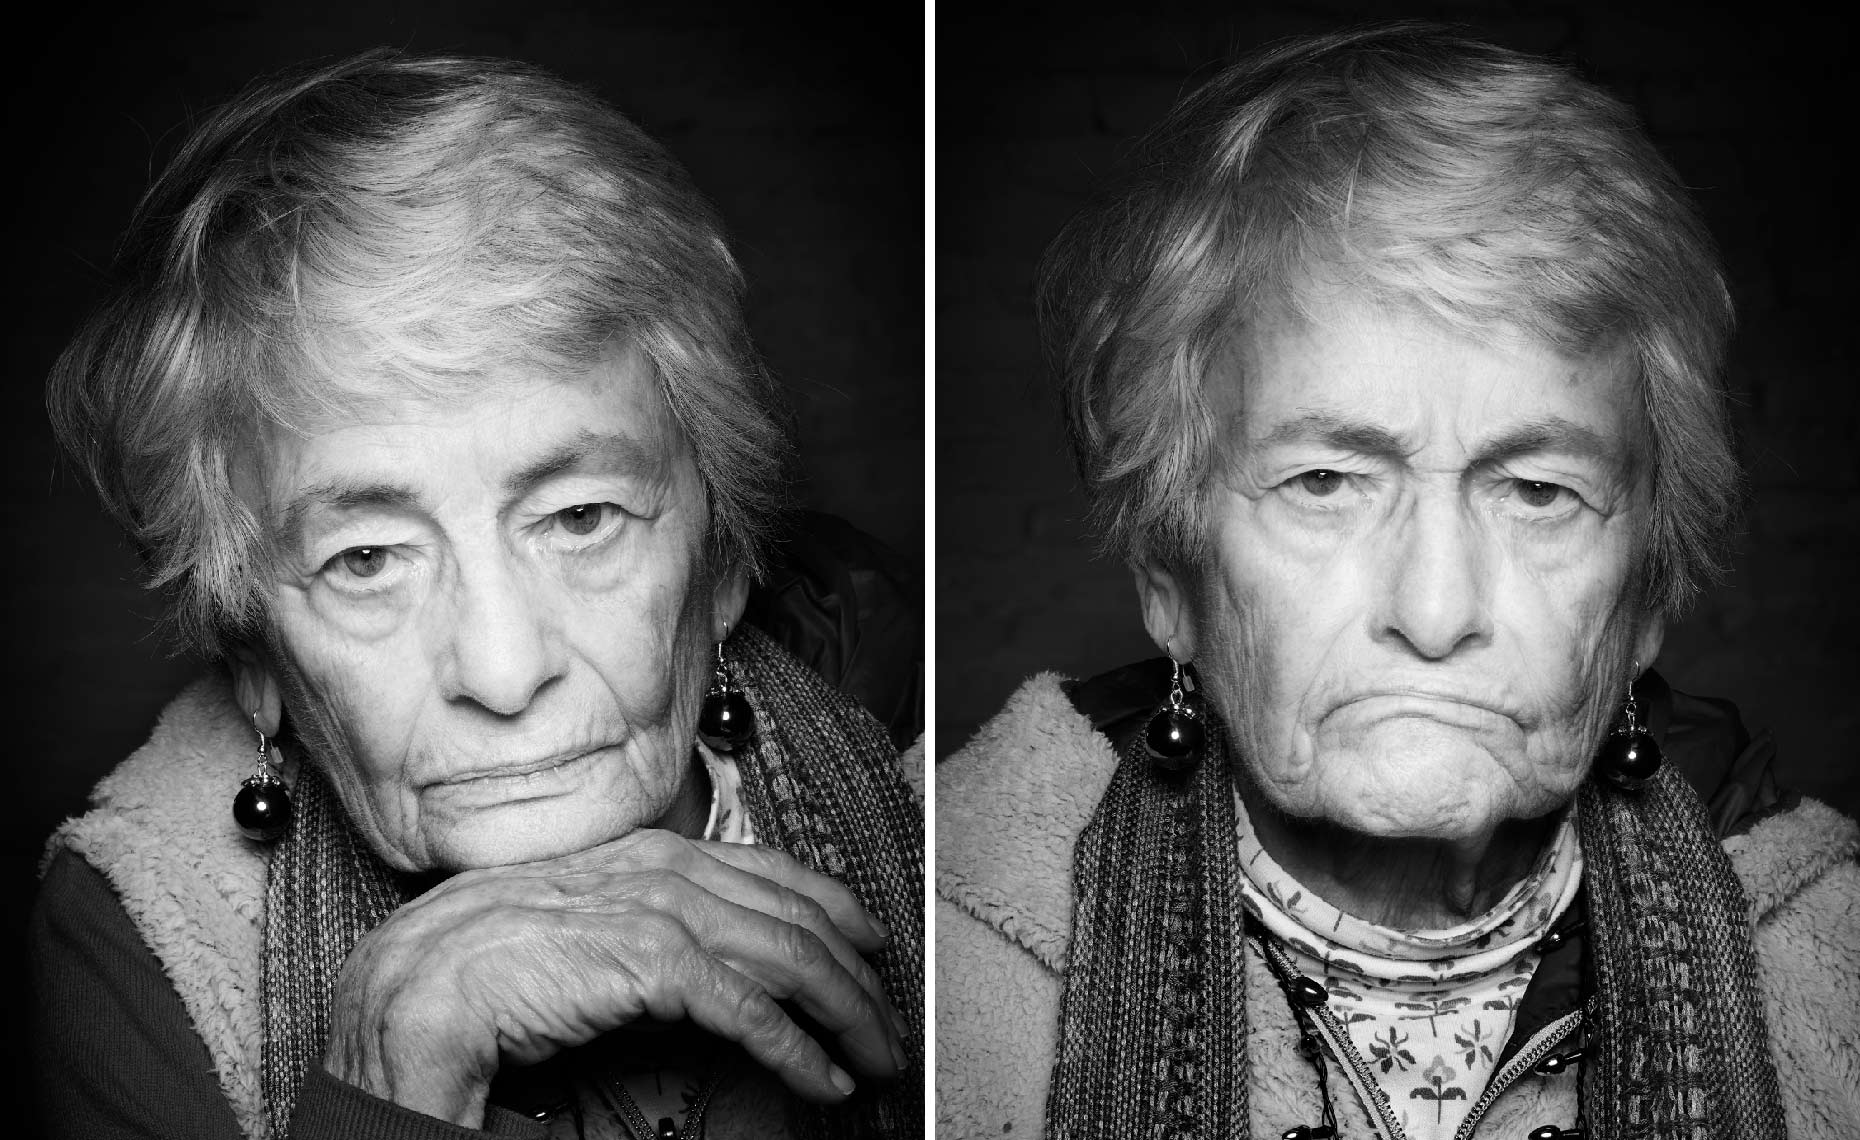 Moody portraits of Nonagenarian Woman Carolie-2up-Moody-V3